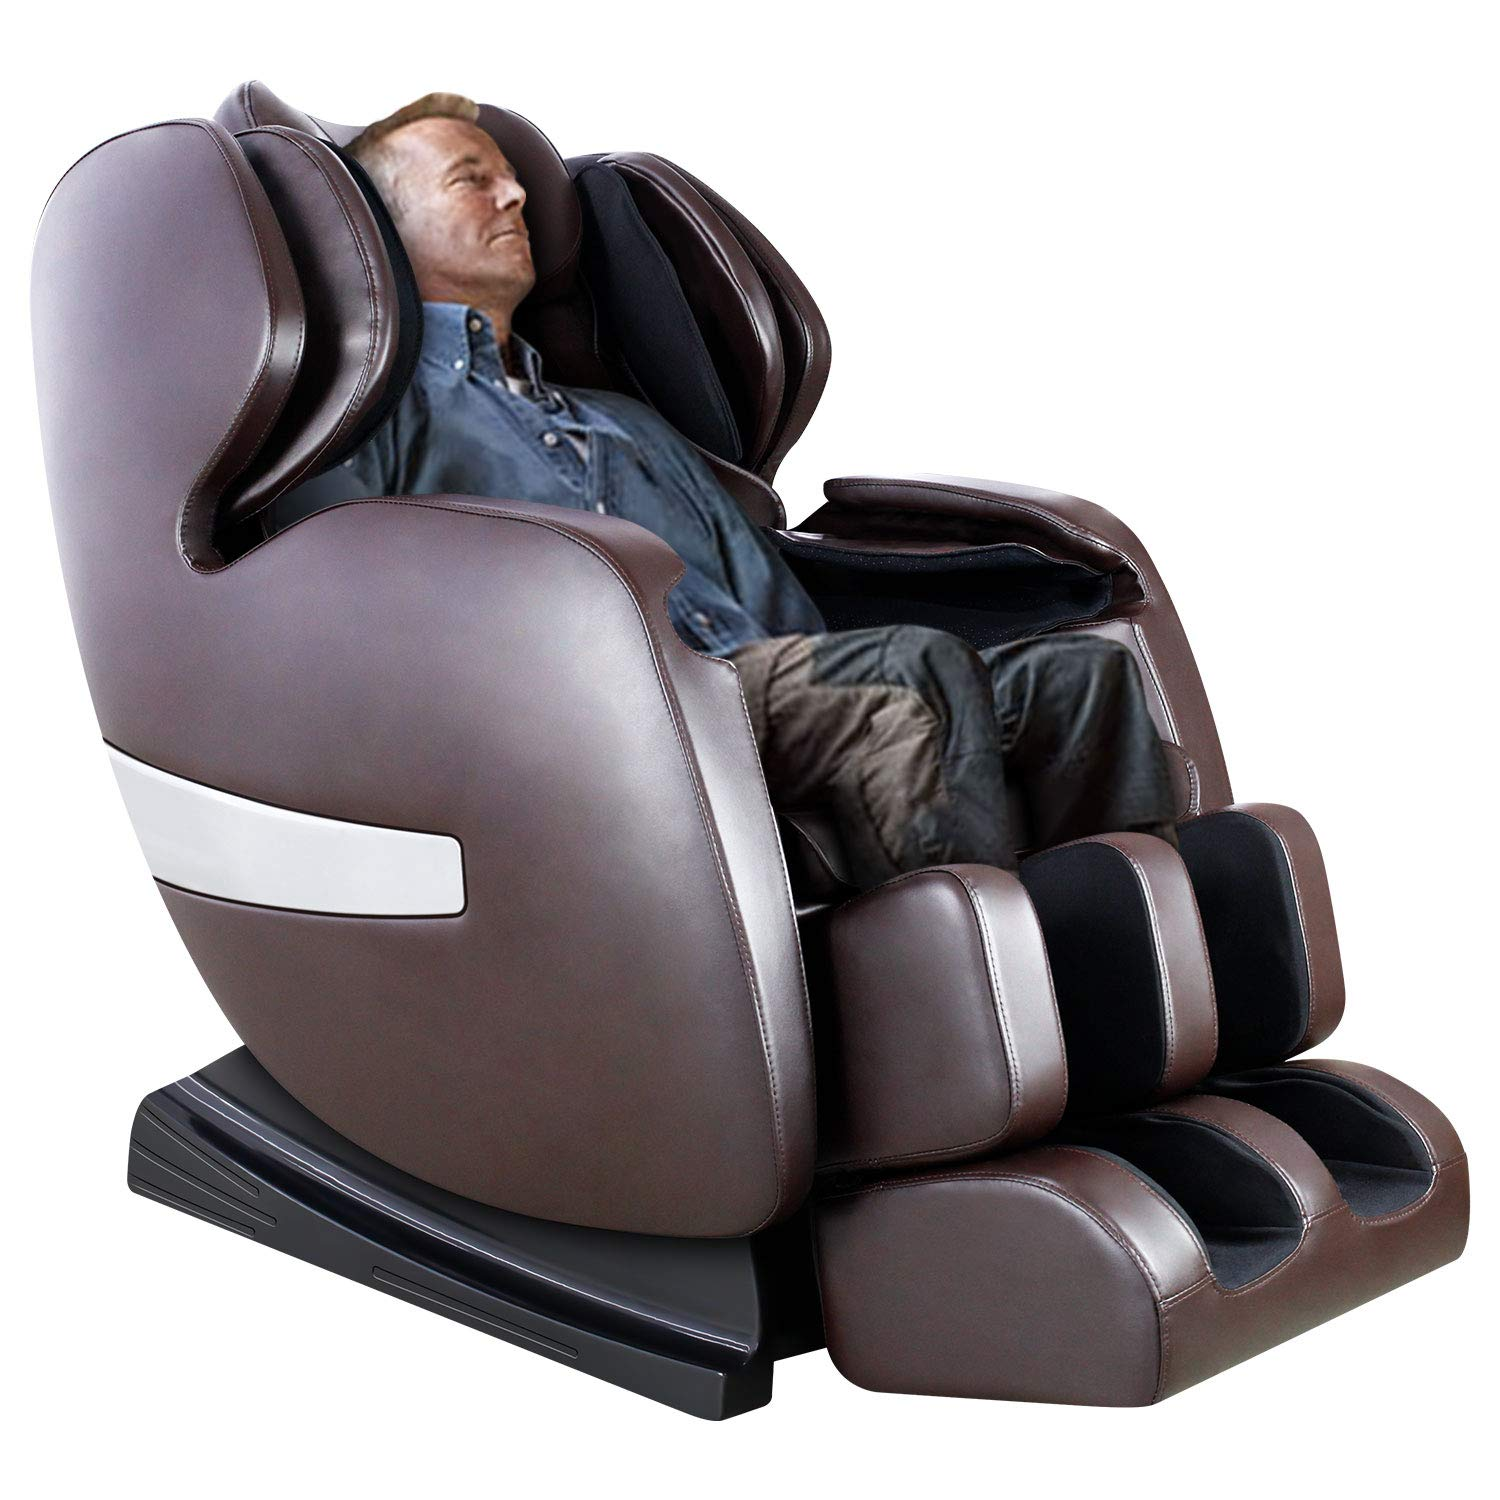 KTN Massage Chair, Shiatsu Massage Chairs with S Track, 3D Massage Chair Zero Gravity Full Body and Recliner with Heat,Vibrating & Foot Roller (Brown)